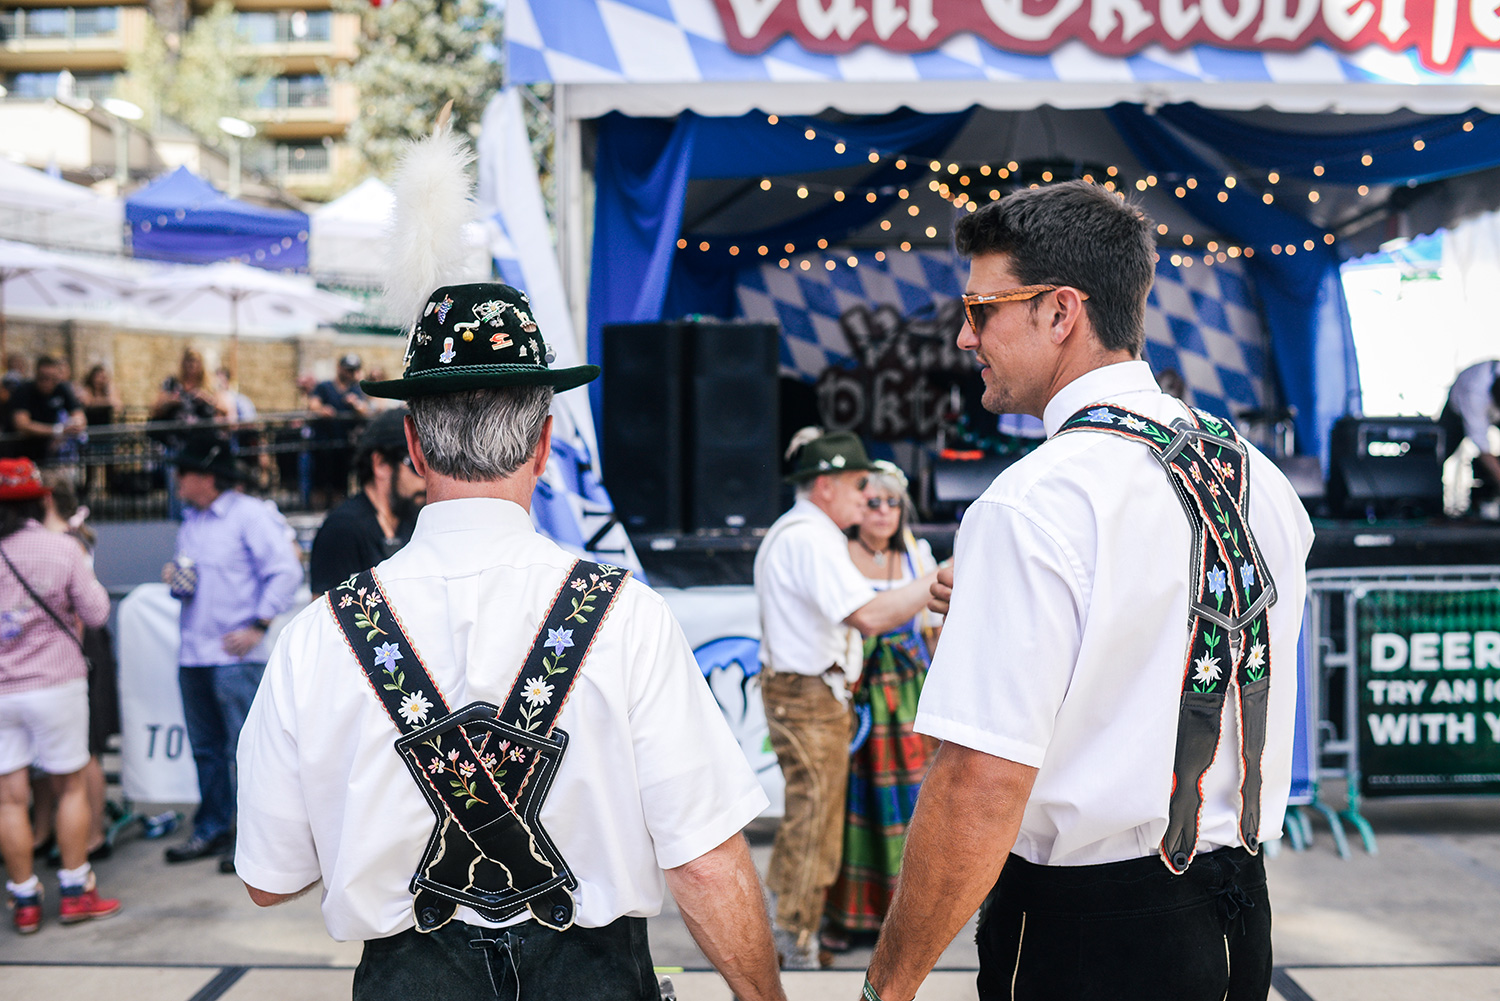 Celebrating Oktoberfest in Lionshead/Vail Colorado